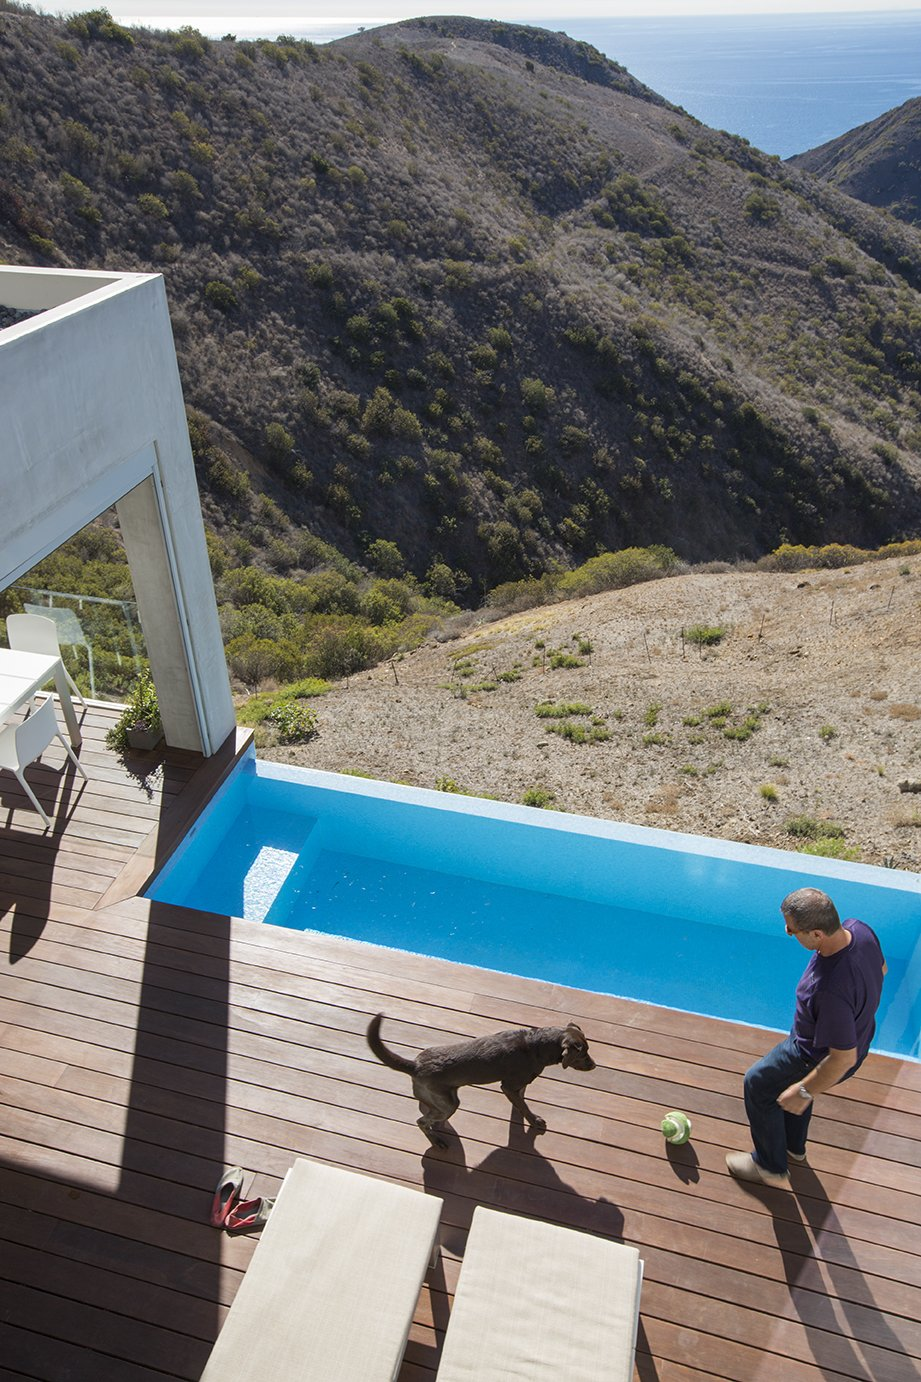 Cantilevered over the hillside is a stainless steel pool by Bradford Products. Facing the Elements - Photo 4 of 5